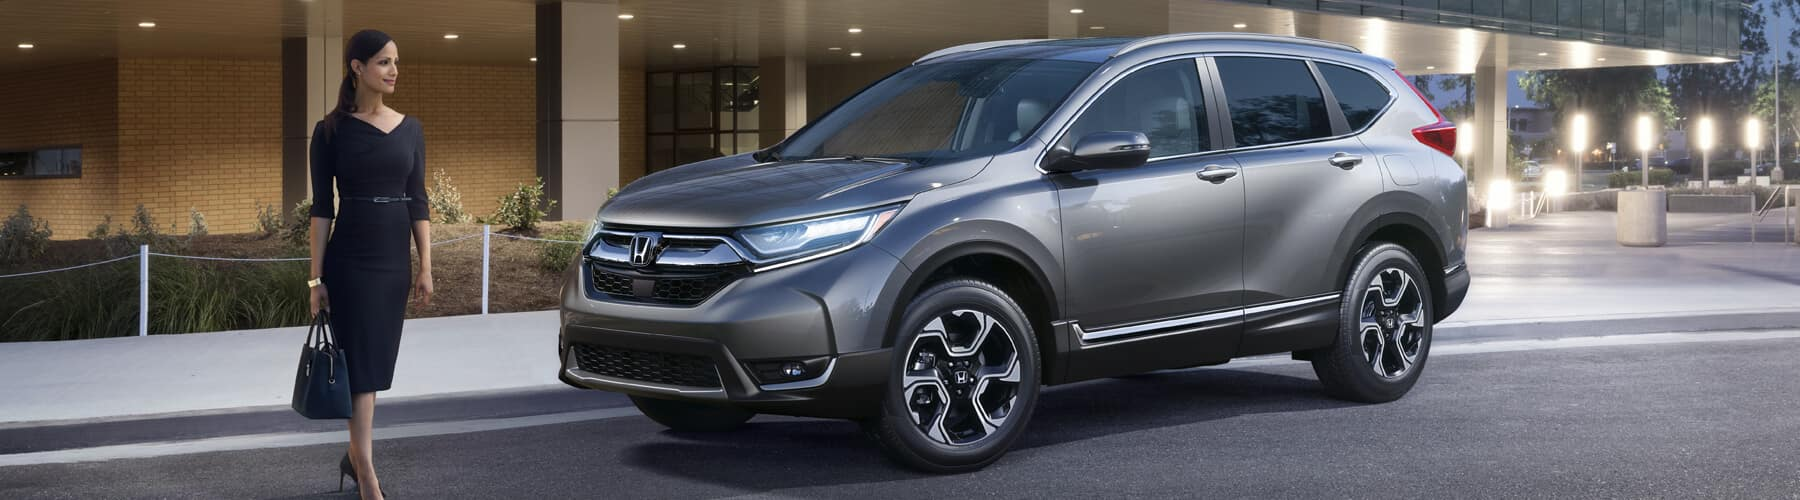 2018 honda cr v montana honda dealers crossover suv for Montana honda dealers